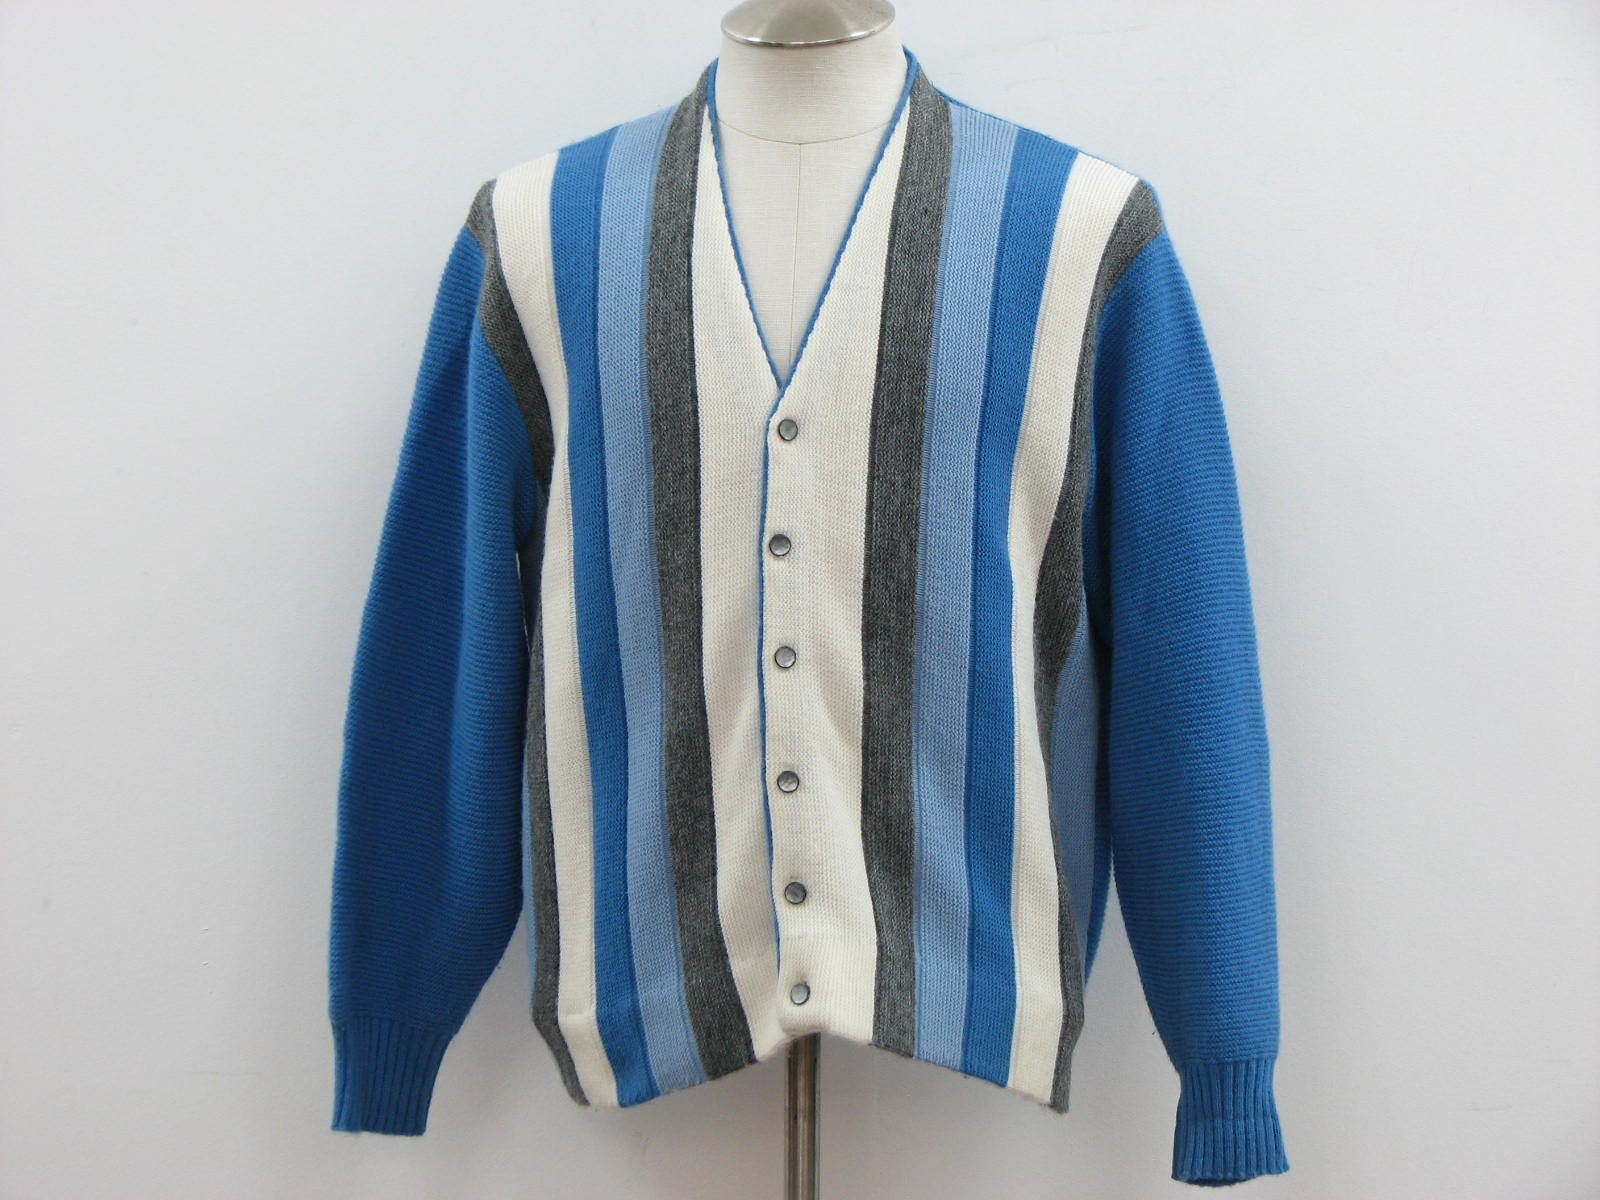 125 best Vintage Cardigan images on Pinterest | Cardigans ...